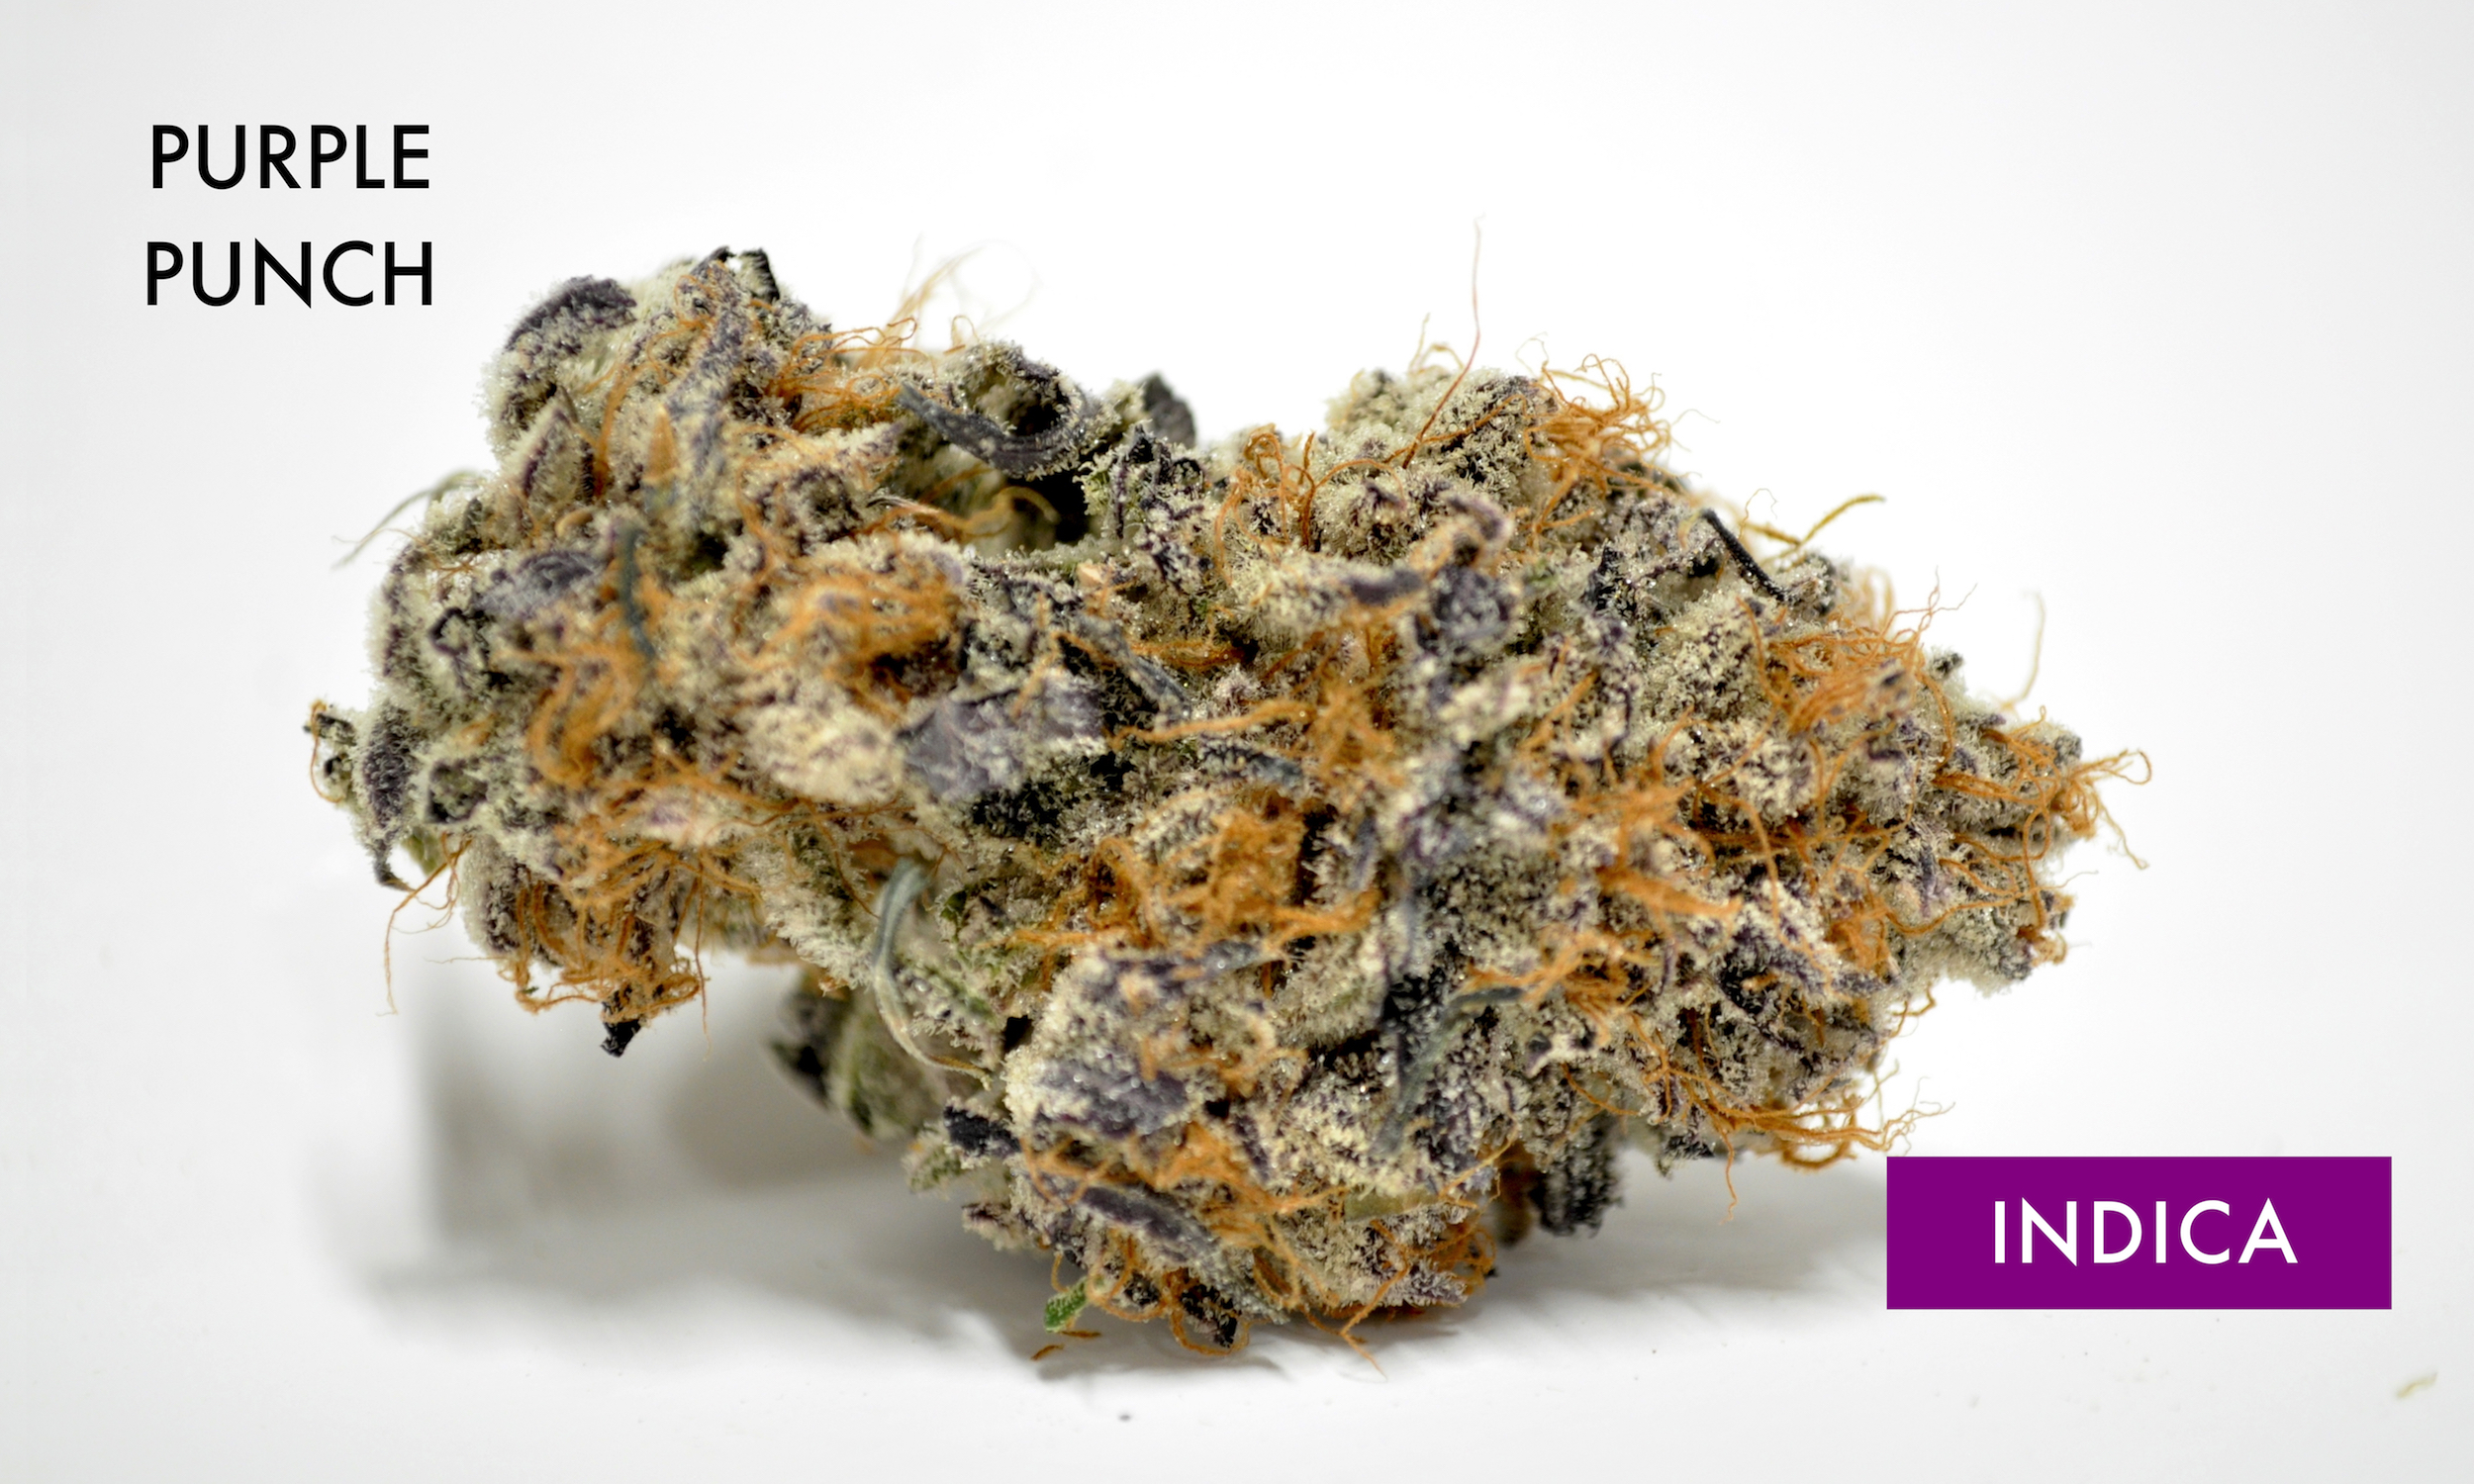 Purple Punch - 100% IndicaPurple Punch is the sweet and sedating union of two indica-dominant classics. By breeding Larry OG with Granddaddy Purple, the astonishing trichome laden Purple Punch was born, smelling of grape candy, blueberry muffins, and tart Kool-Aid. The potency of this strain gives the consumer a one-two punch to the head and body, initially landing between the eyes and settling down into the limbs. Purple Punch is a delicious dessert strain that is best suited for after dinner. Its effects may help with managing nausea, stress, minor body aches, and sleeplessness.